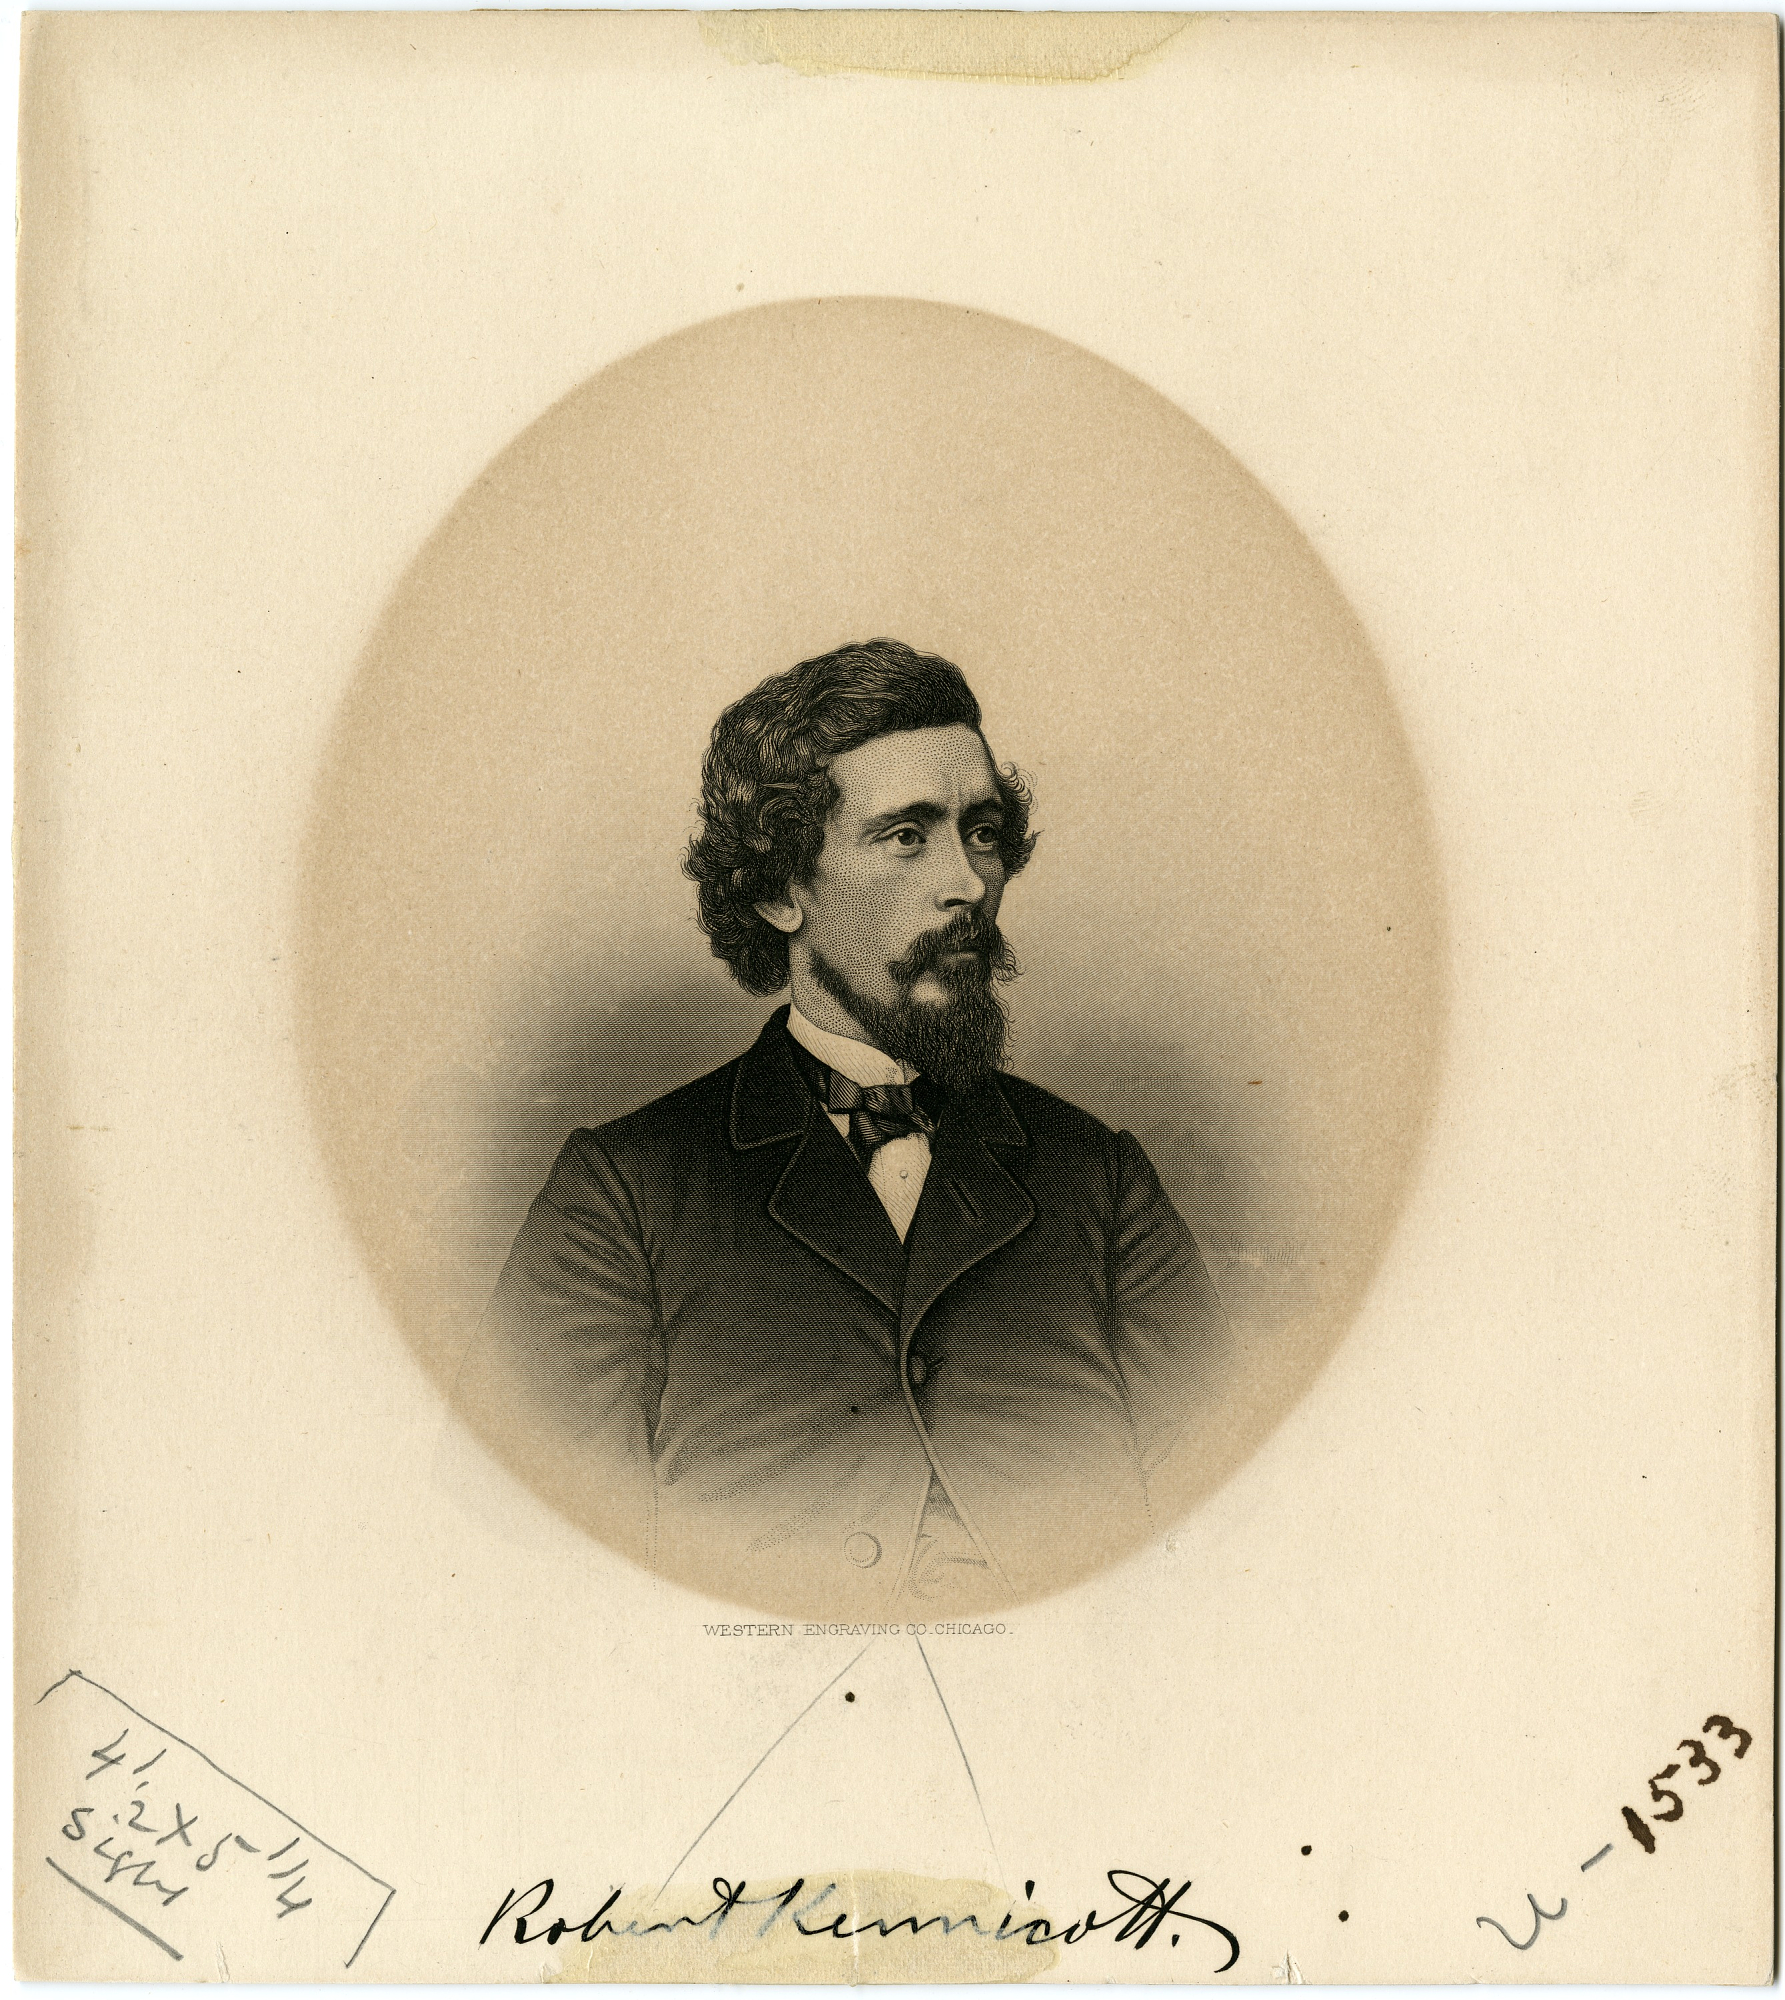 Engraving of Robert Kennicott